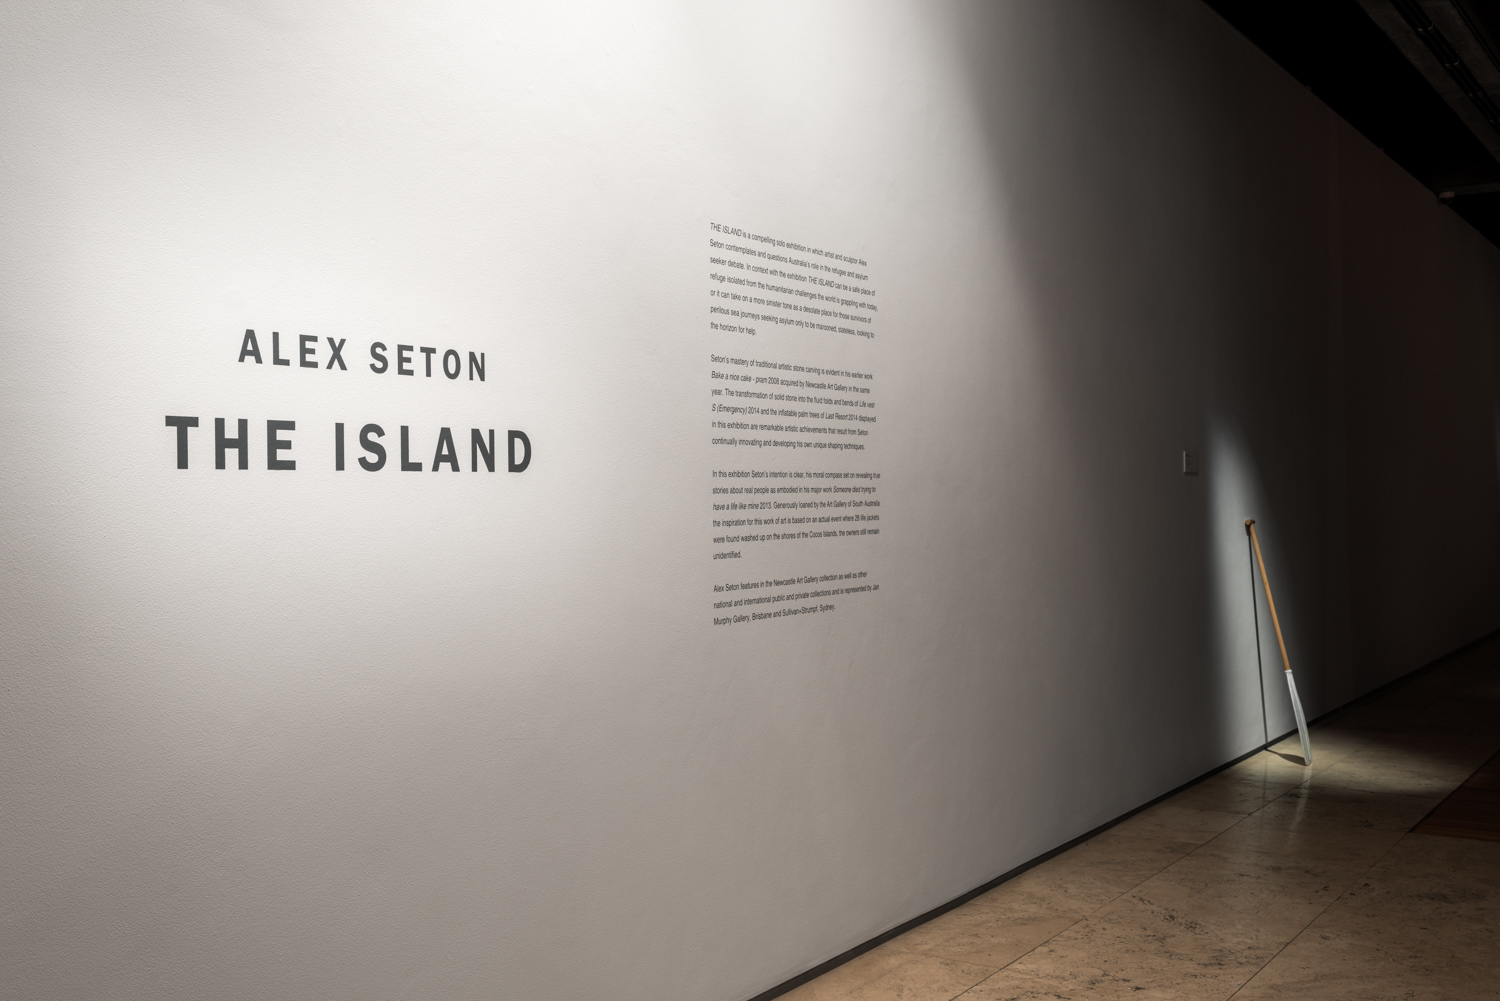 The Island   Newcastle Art Gallery 18 February - 7 May 2017   This solo exhibition contemplates and questions Australia's role in the asylum debate. 'The Island' as a concept can be a safe place of refuge, isolated geographically and ideologically from the humanitarian challenges the world is currently grappling with. Alternatively it can take on a more sinister tone as a place deserted for those who have survived a perilous sea journey only to be marooned, stateless, detained, looking to the horizon for help.  In Europe today, the mass movement of refugees and asylum seekers displaced by war and poverty is history repeated. Where once immigrants were embraced as a means to drive the health and economy of nations, today we turn inwards as the ideology of walls and fences become potent political capital. Seton transforms and manipulates his marble sculptures into emphatic motifs and metaphors of these current socio-political themes and narratives.  Photography: Mark Pokorny